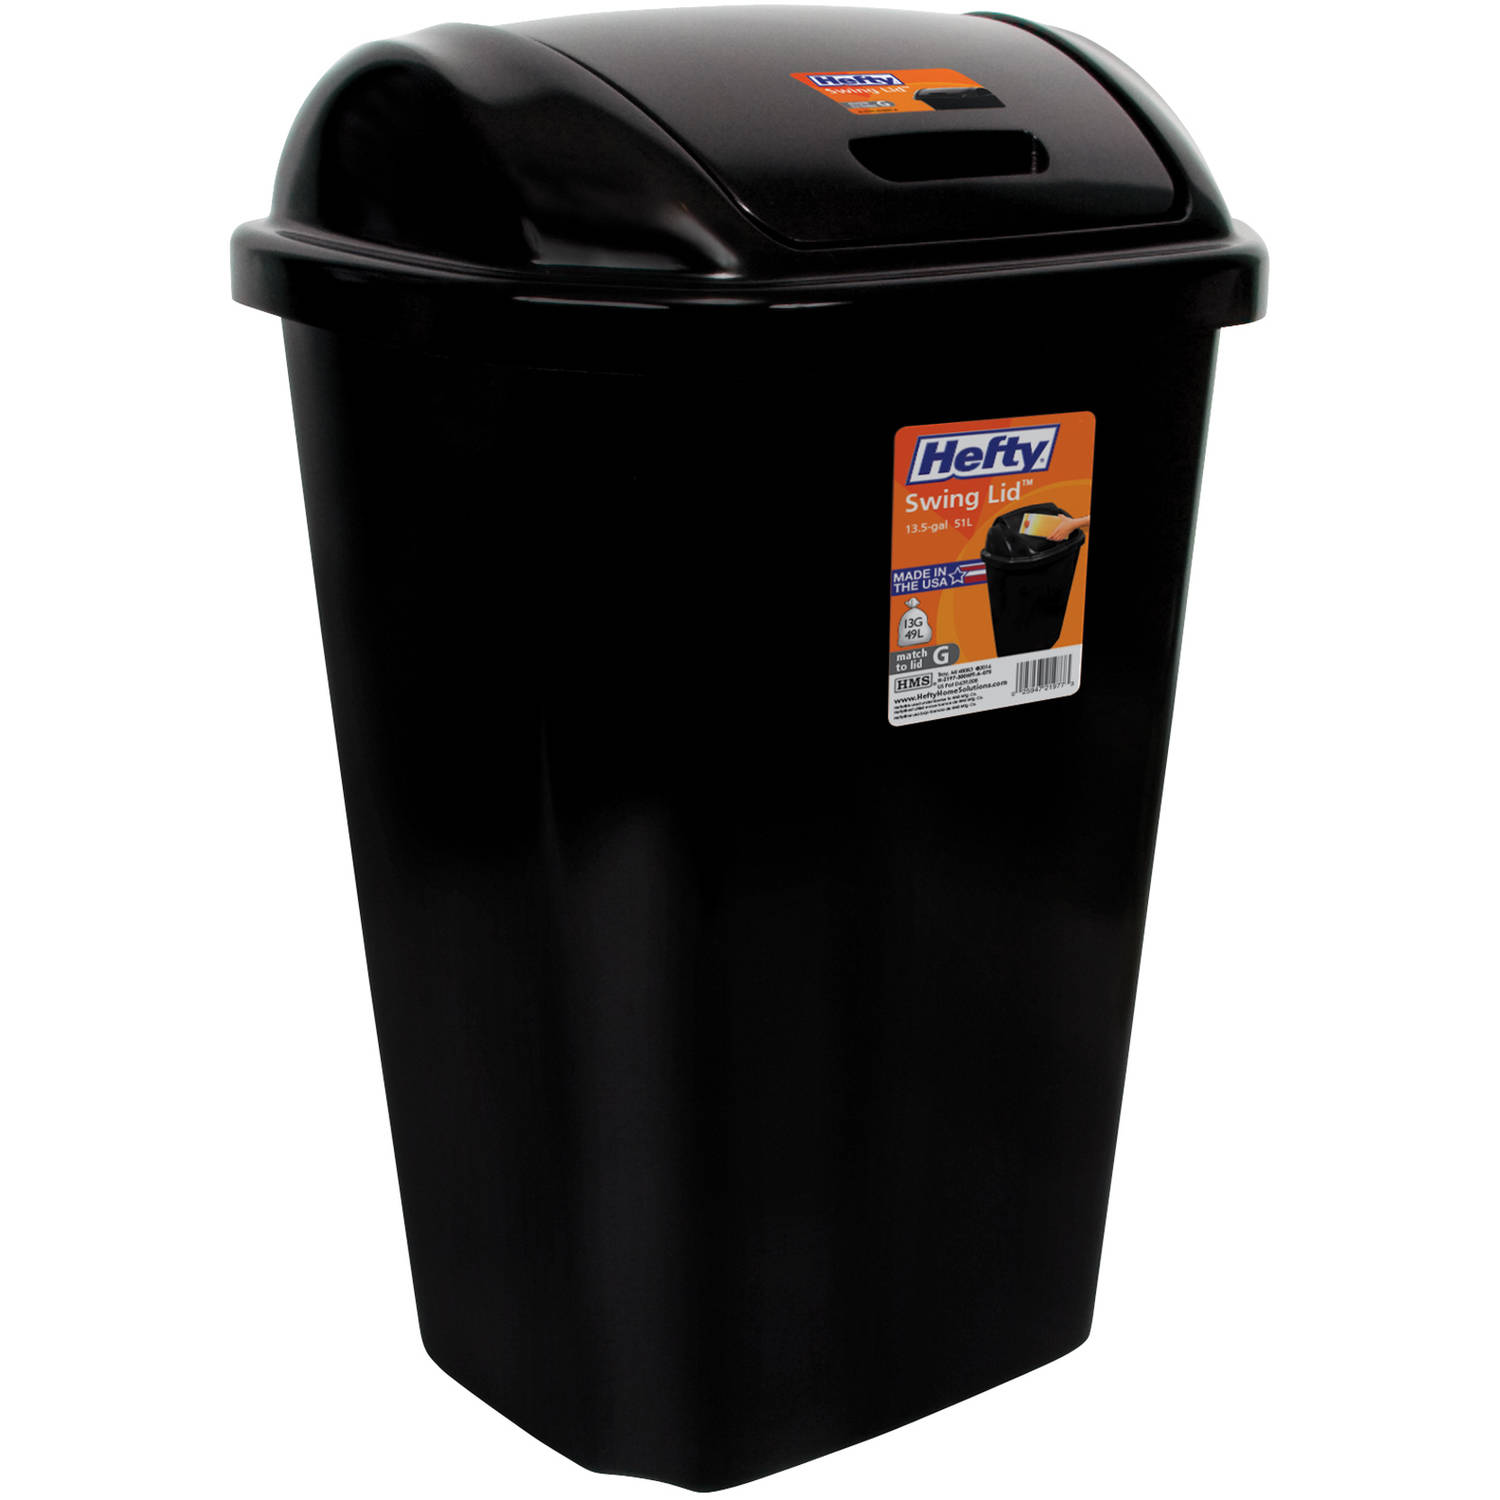 Hefty Swing-Lid 13.5 Gal Trash Can, Multiple Colors